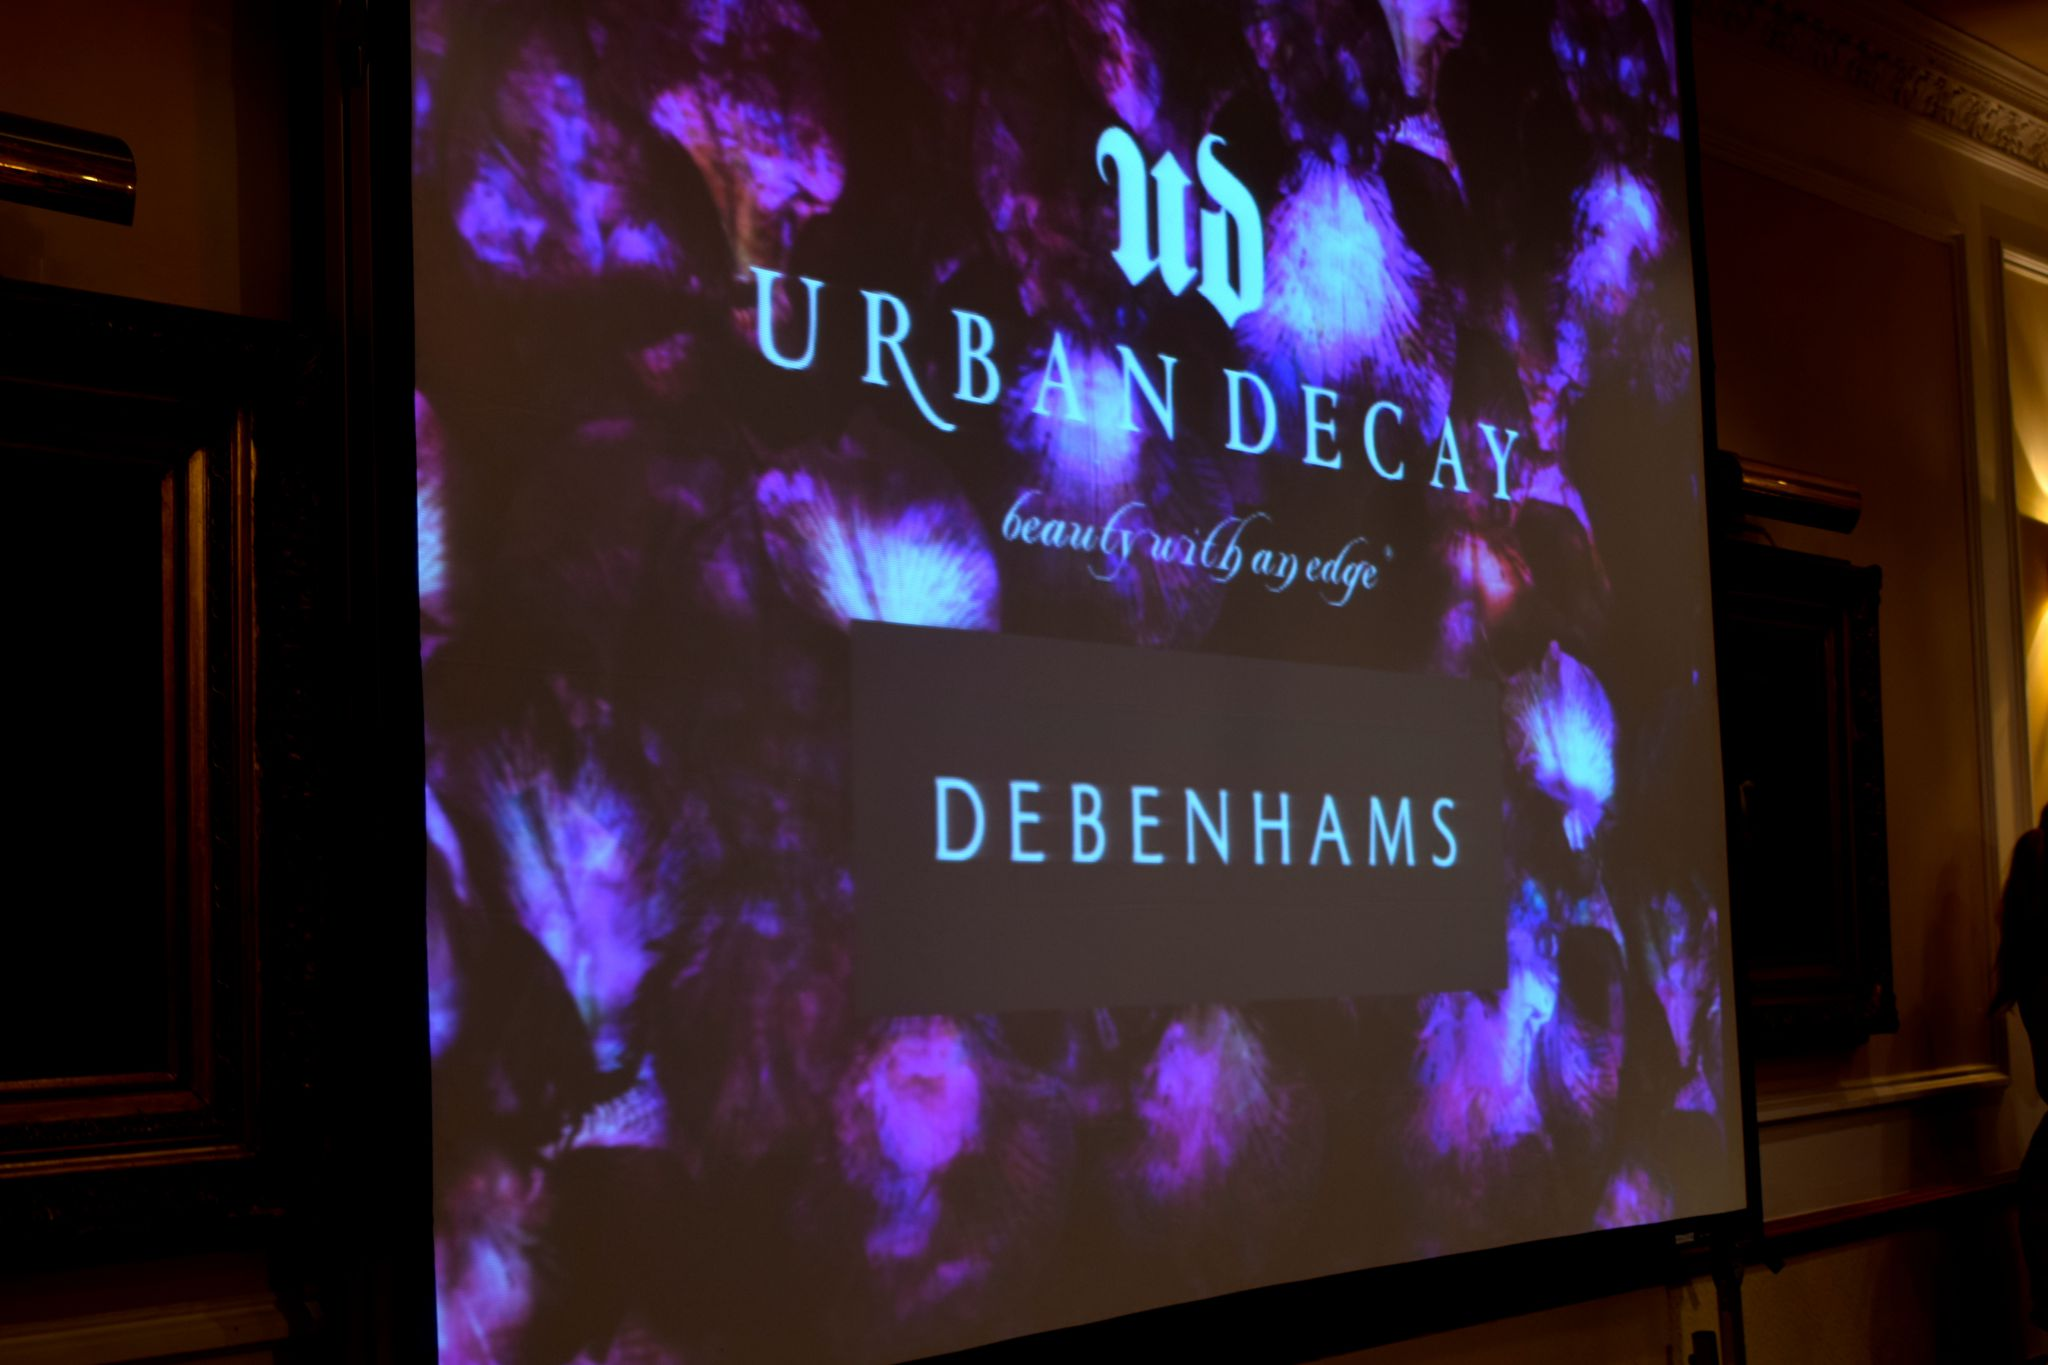 Urban Decay, Debenhams & The Roxburghe Hotel 5